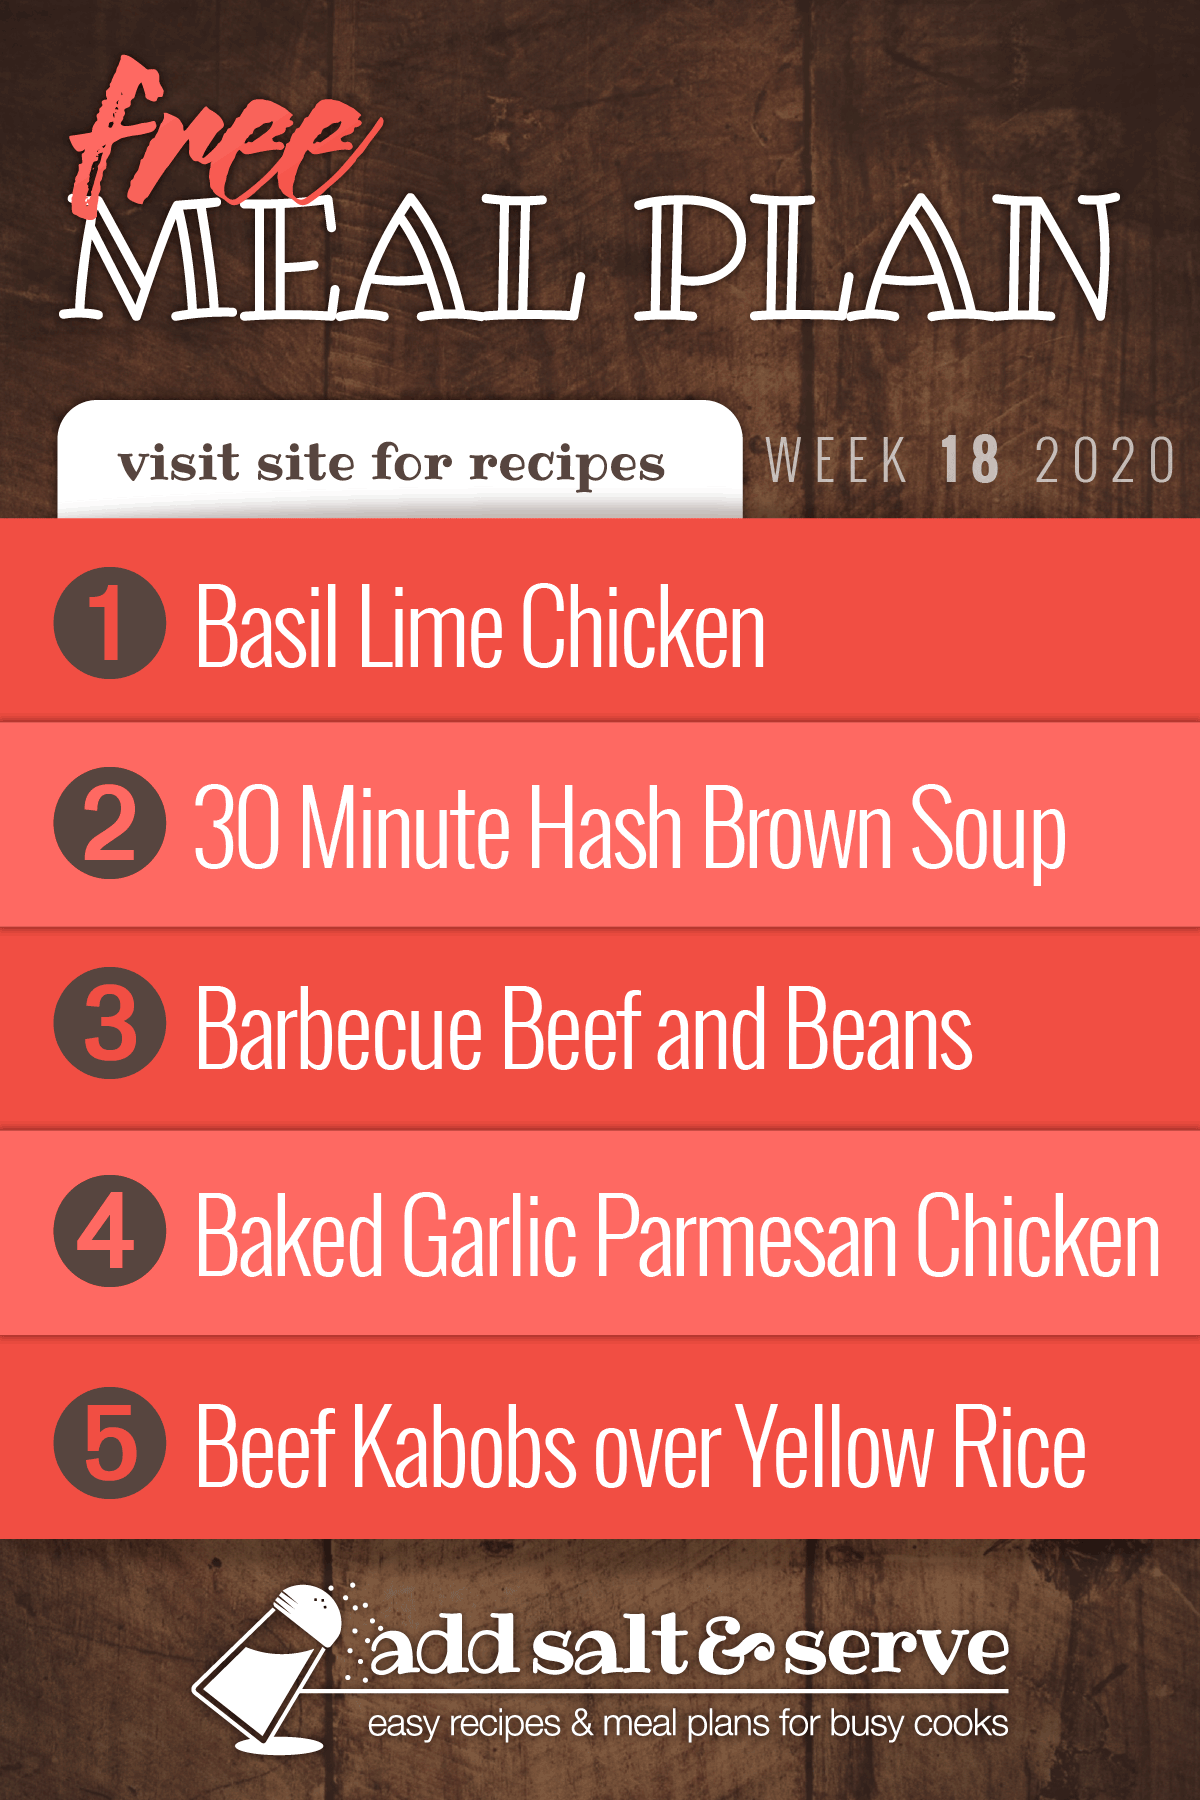 Free Meal Plan for Week 18 2020: Basil Lime Chicken, 30 MInute Hash Brown Soup, Barbecue Beef and Beans, Baked Garlic Parmesan Chicken, Beef Kabobs over Yellow Rice - Add Salt & Serve - Visit site for recipes